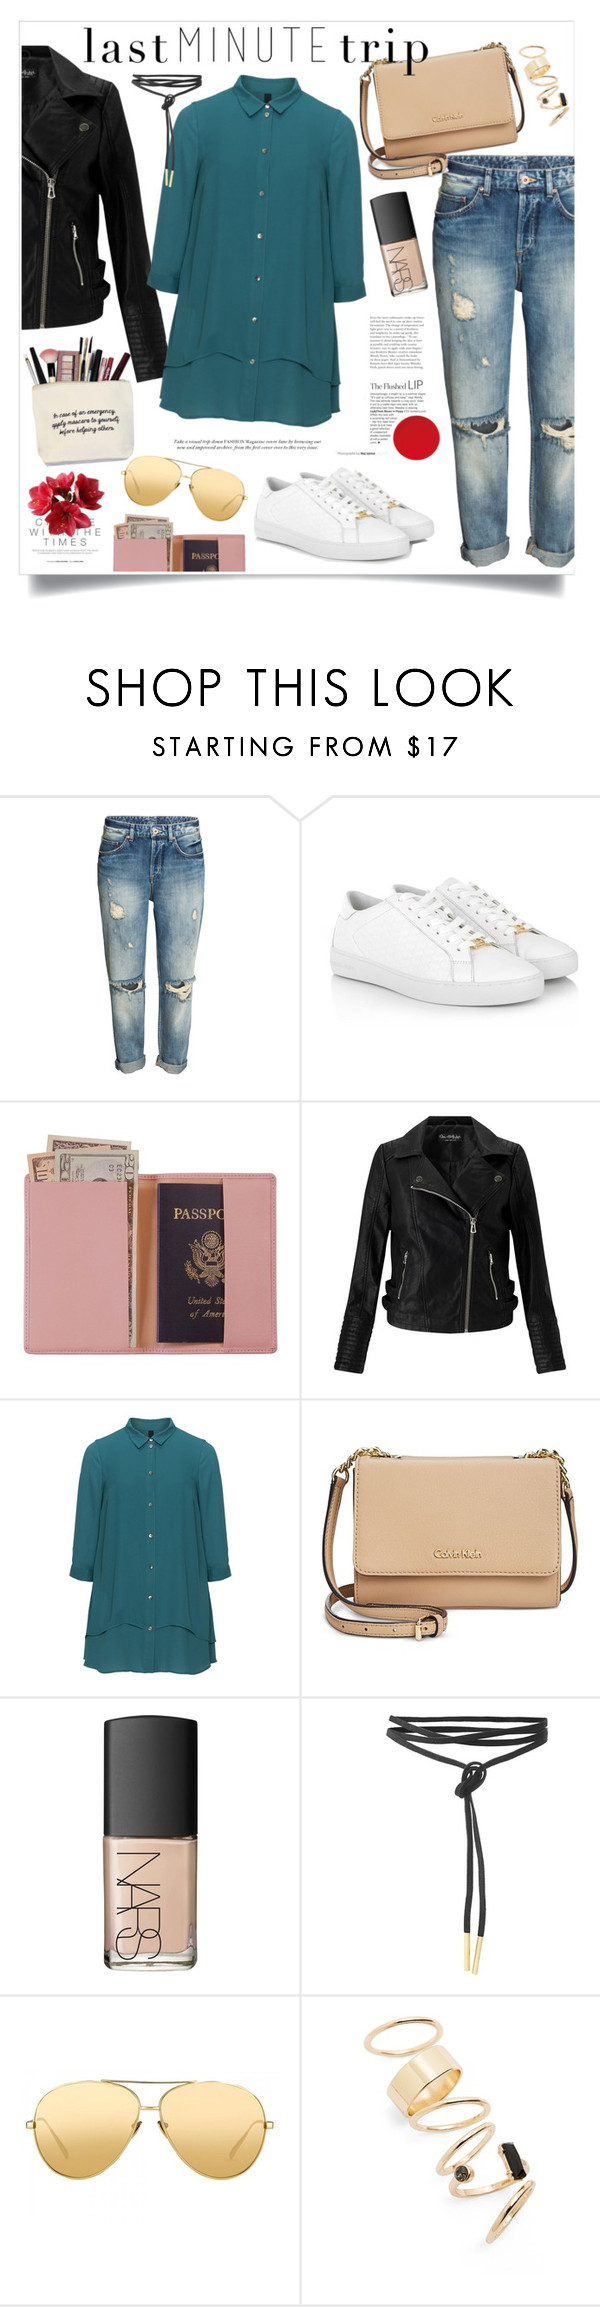 """""""Let's go somewhere!"""" by gold-candle23 ❤ liked on Polyvore featuring Michael Kors, Royce Leather, Miss Selfridge, Manon Baptiste, Calvin Klein, NARS Cosmetics, Linda Farrow, BP. and lastminutetrip"""